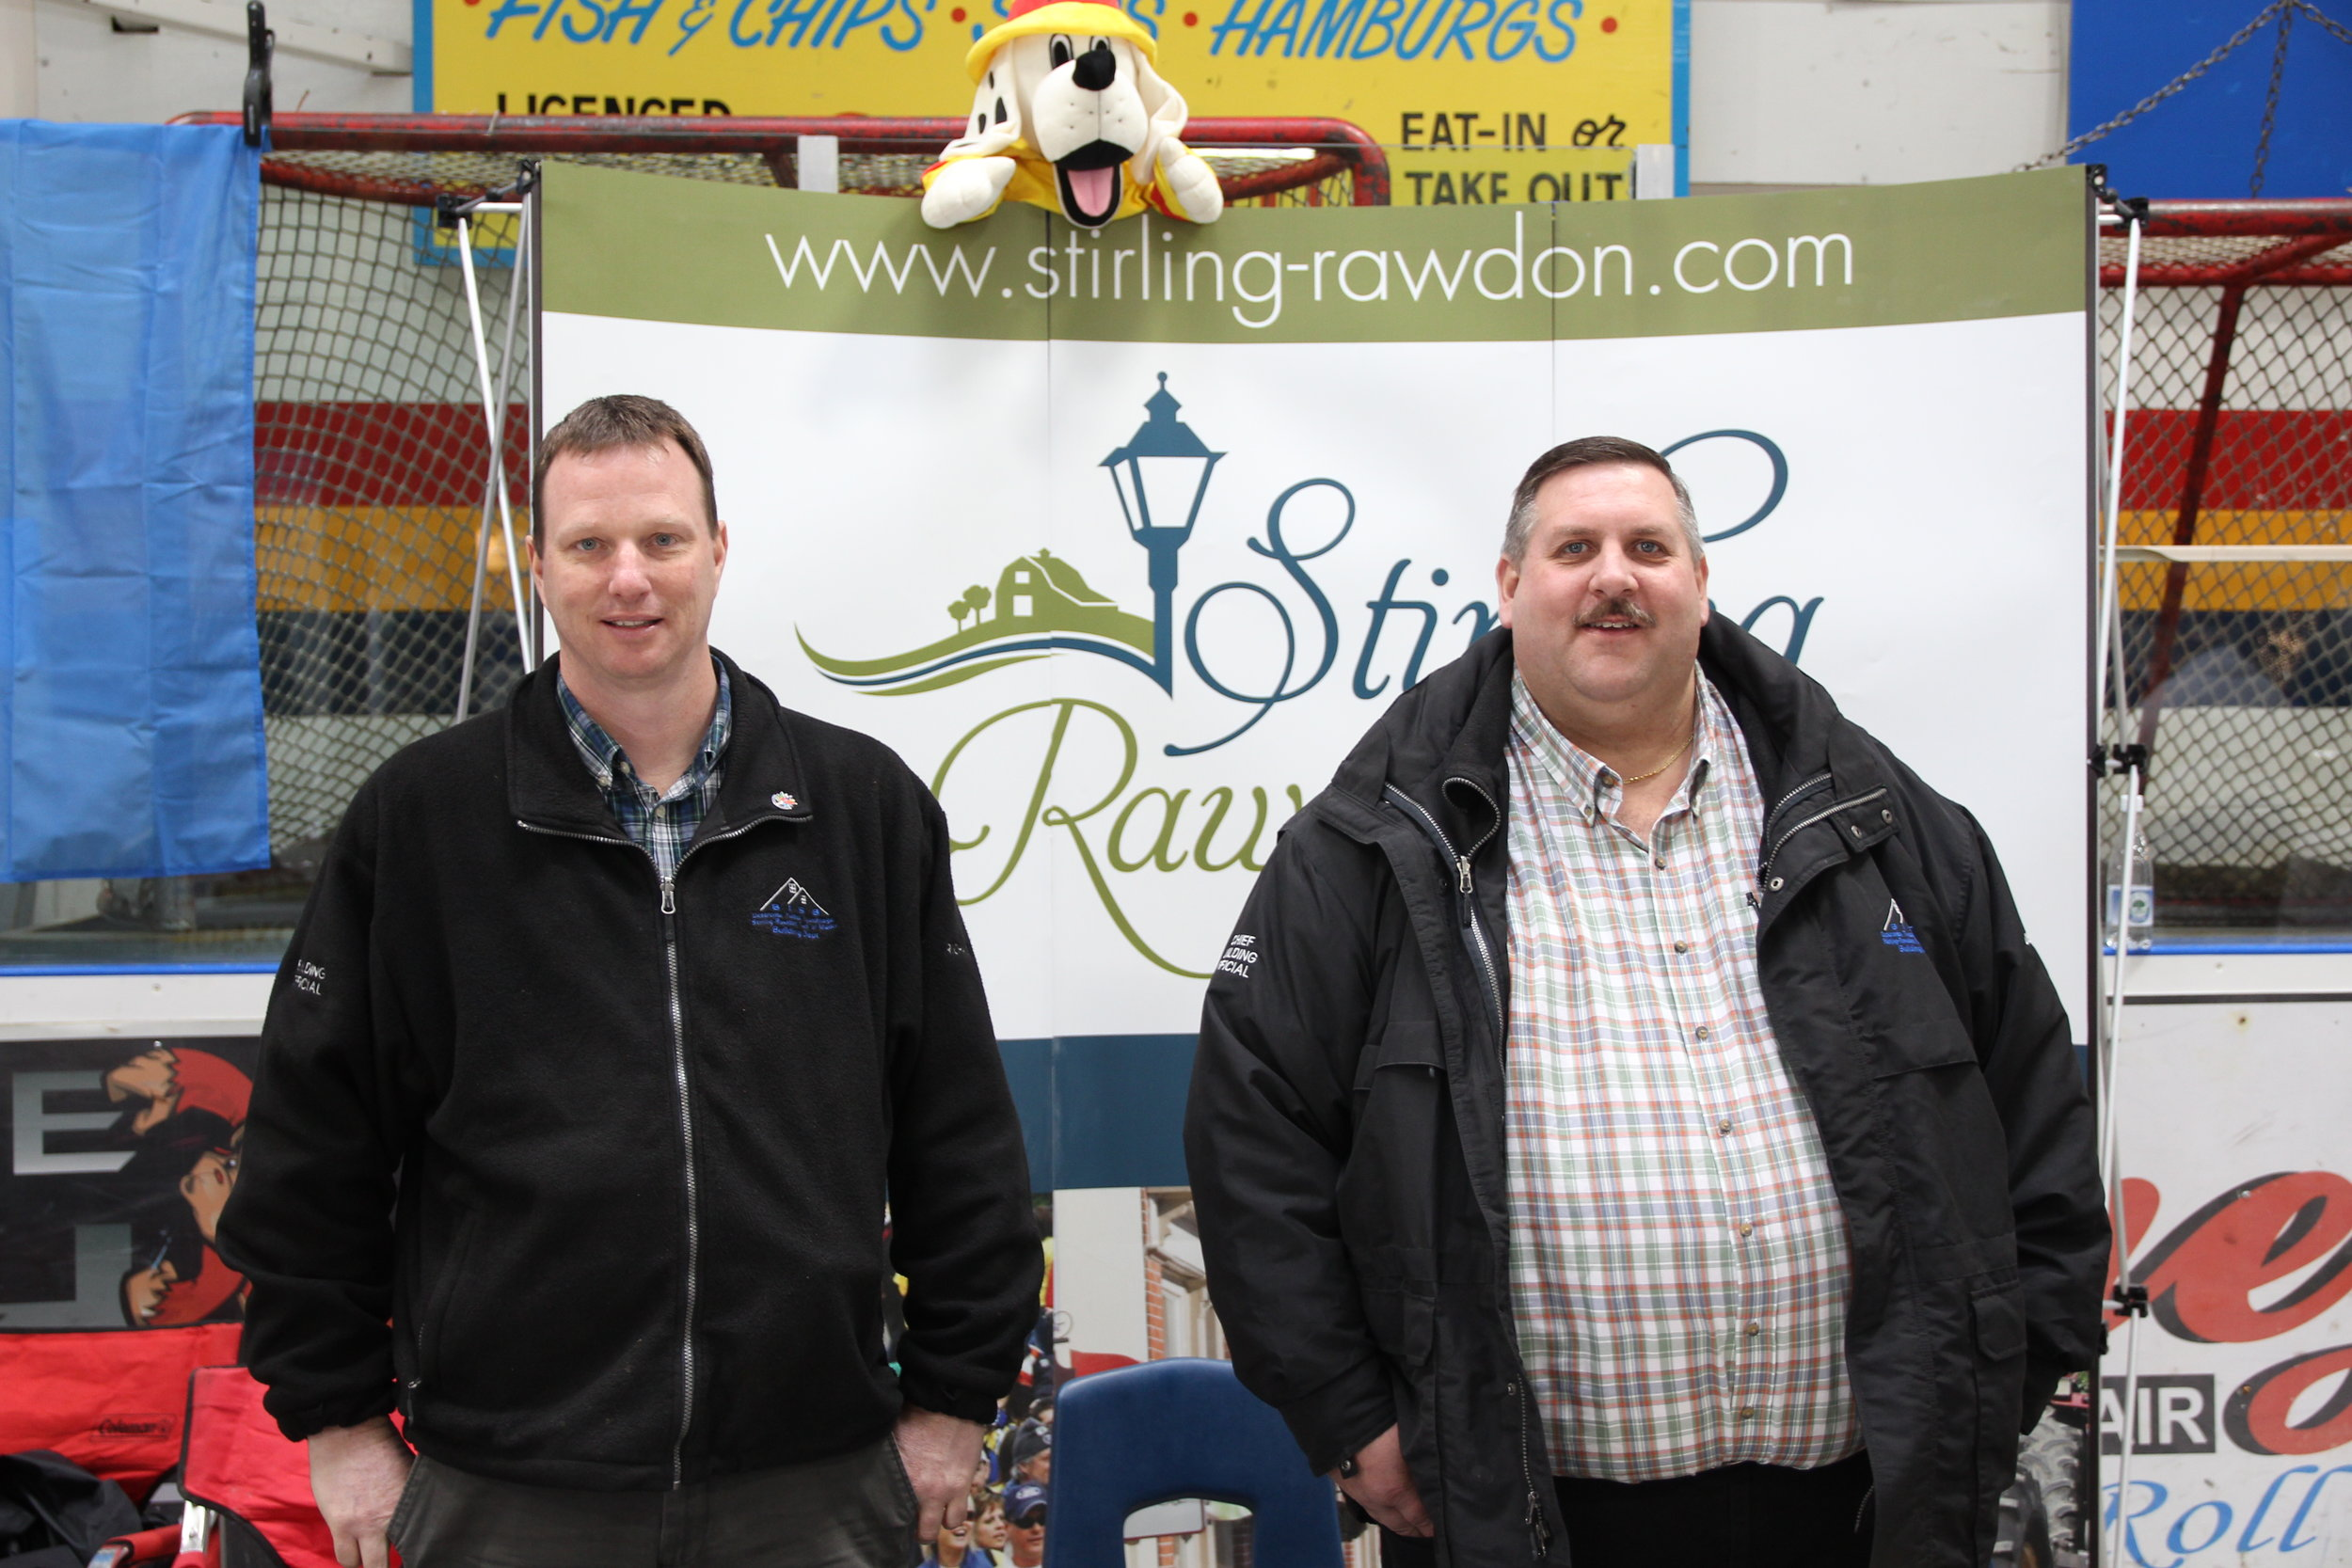 The 4th annual Home and Lifestyle Expo will be held April 27, 5:30 – 8 p.m., and April 28 from 9 a.m. – 4 p.m. at the Stirling Rawdon & District Recreation Centre